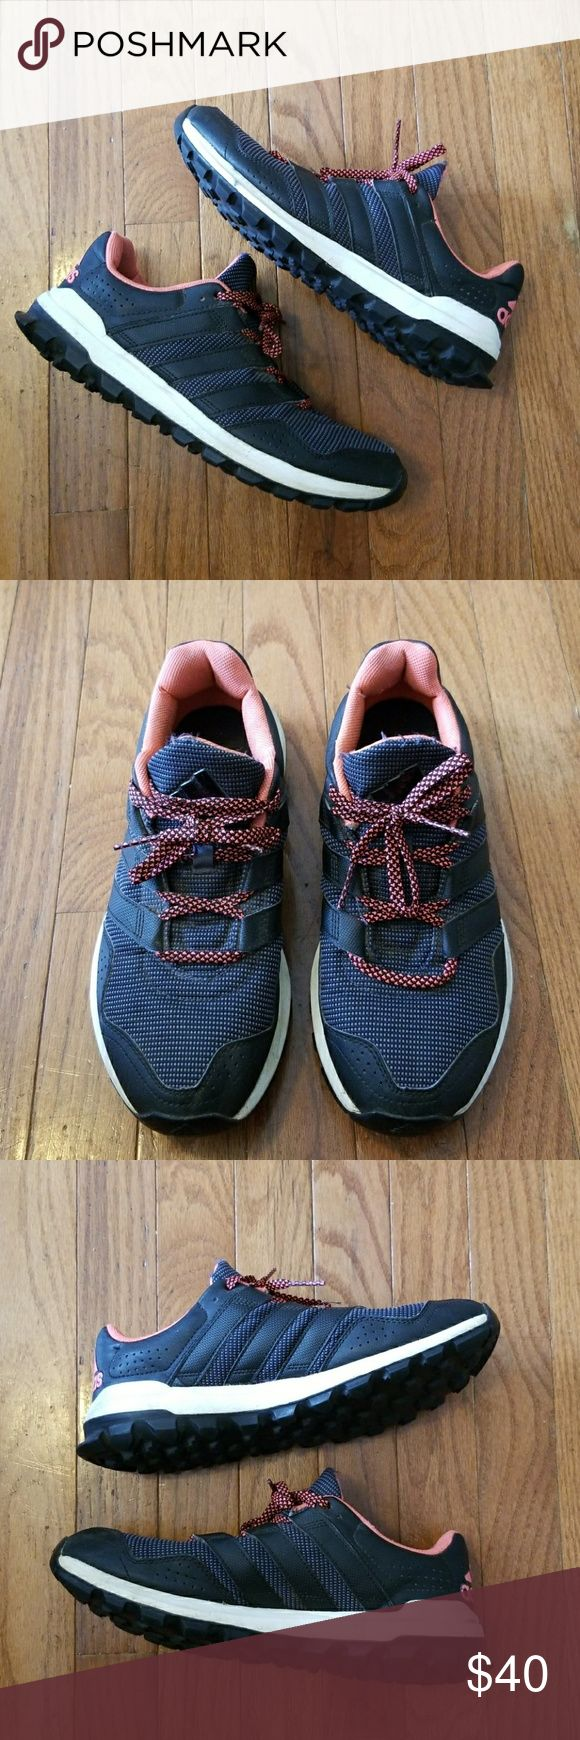 Cute Women's Adidas Trail Running Hiking Shoes 9 Very cute hybrid hiking/running trail Adidas Sneakers black and pink. Size 9. adidas Shoes Athletic Shoes